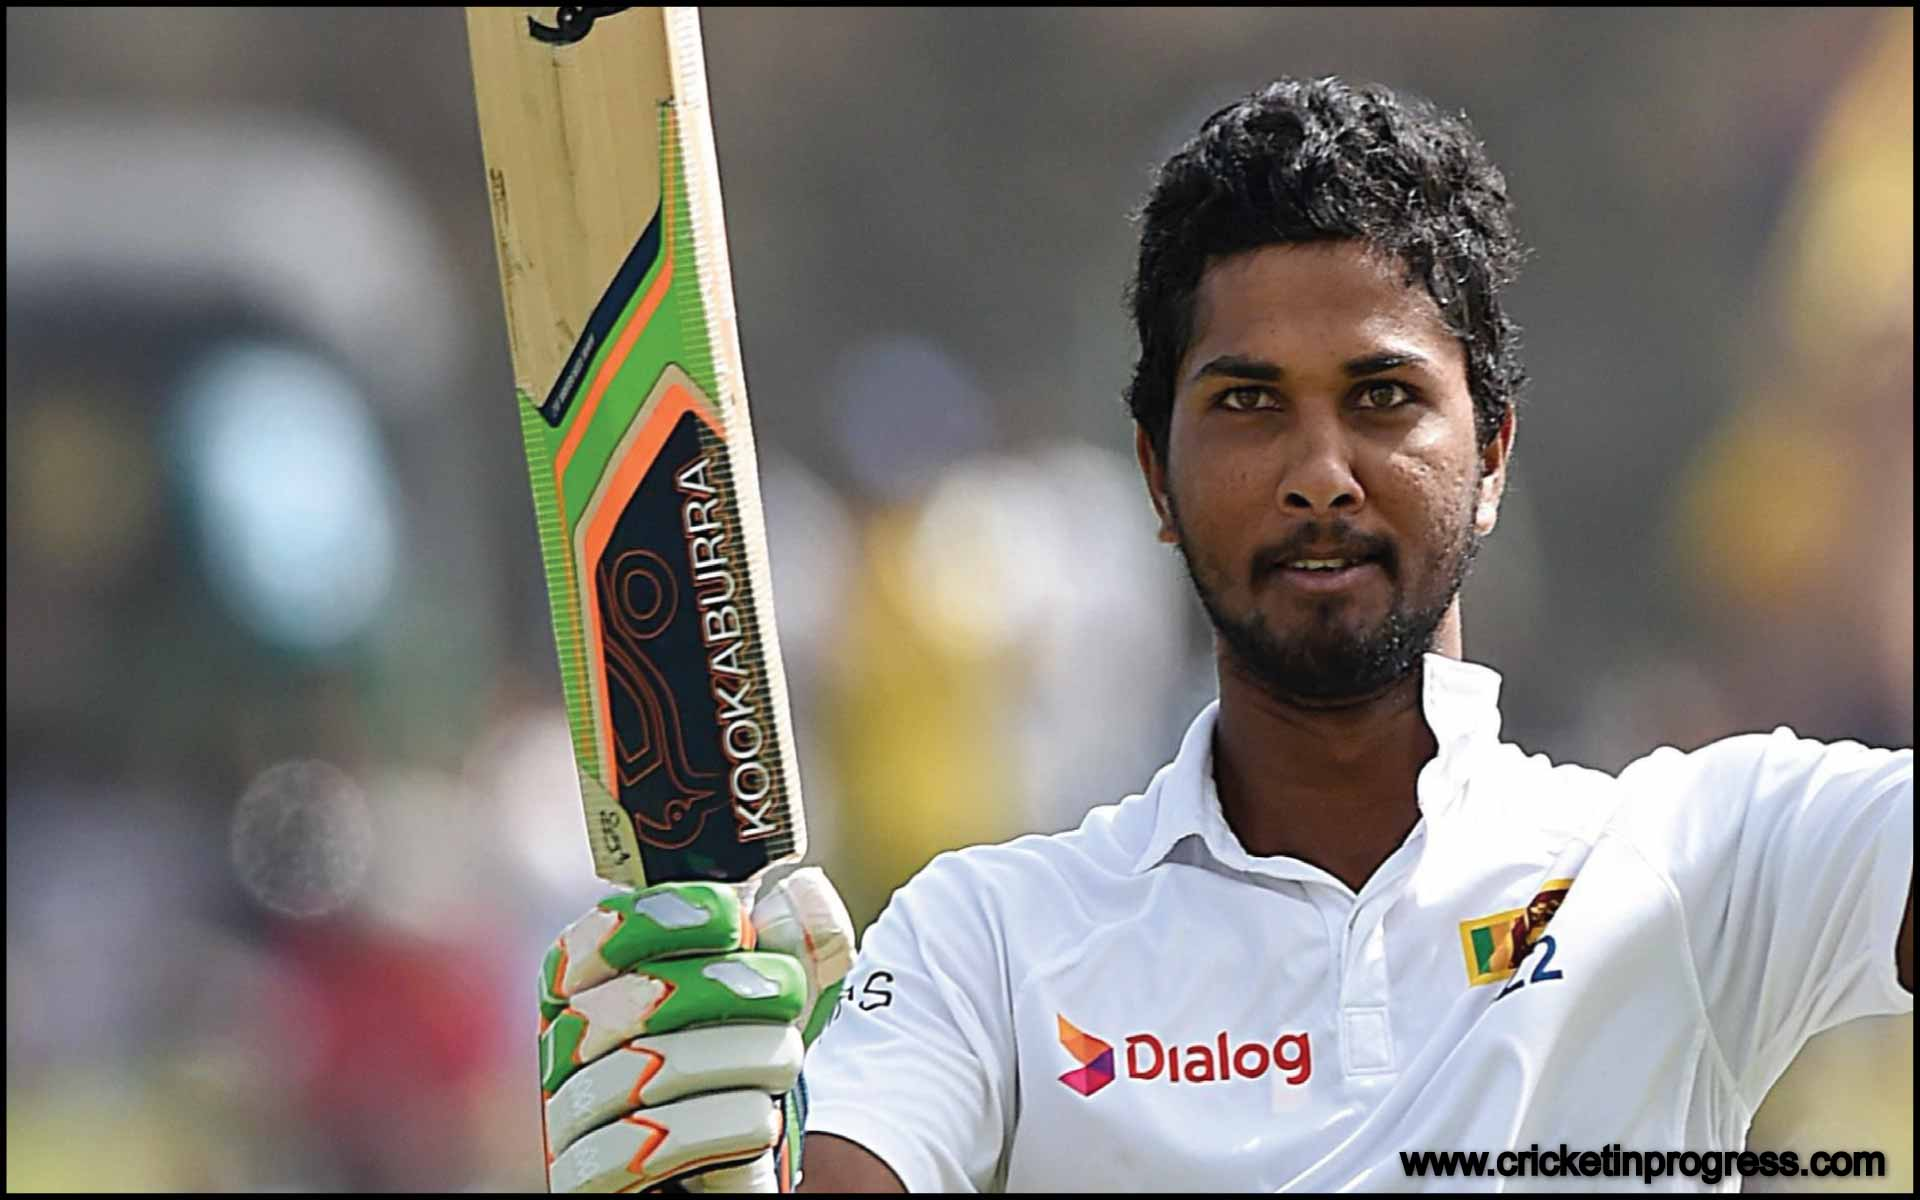 What happened to Dinesh Chandimal, the captain